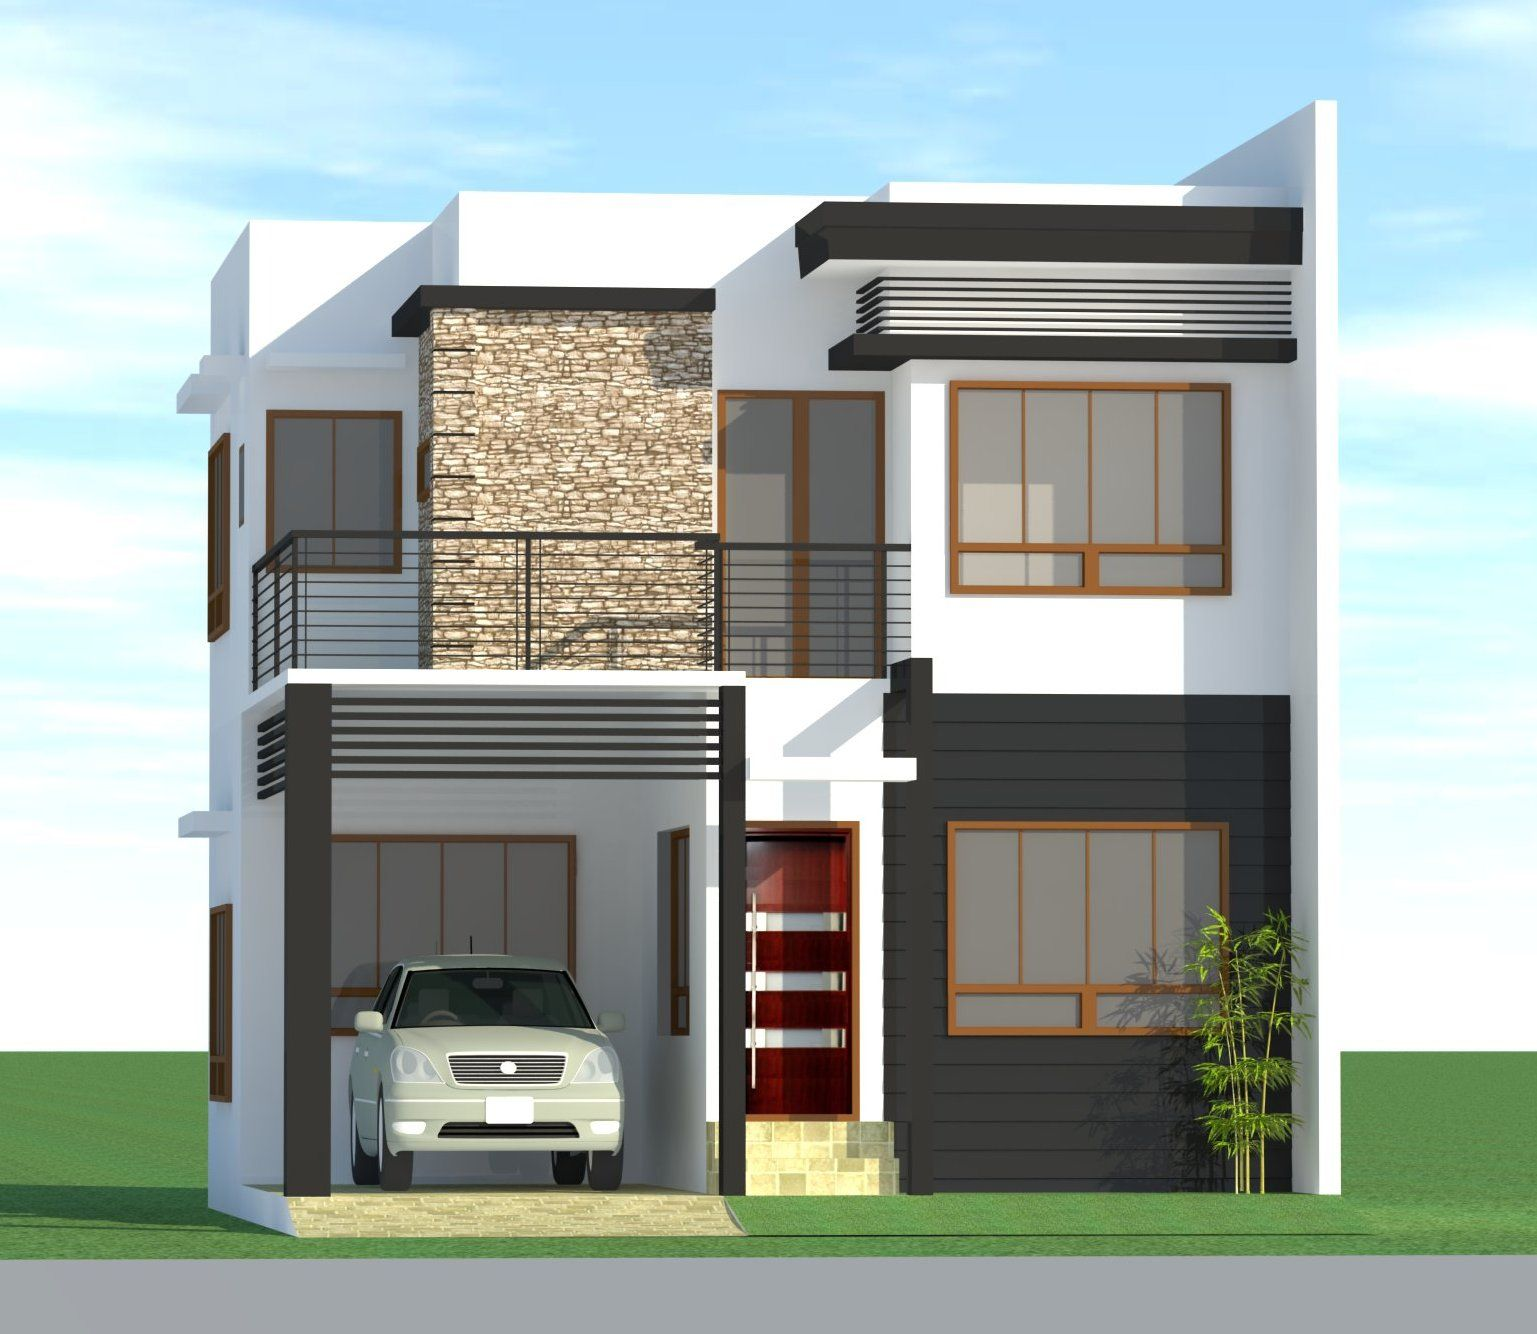 Philippines house design images 3 home design ideas for Small modern house ideas